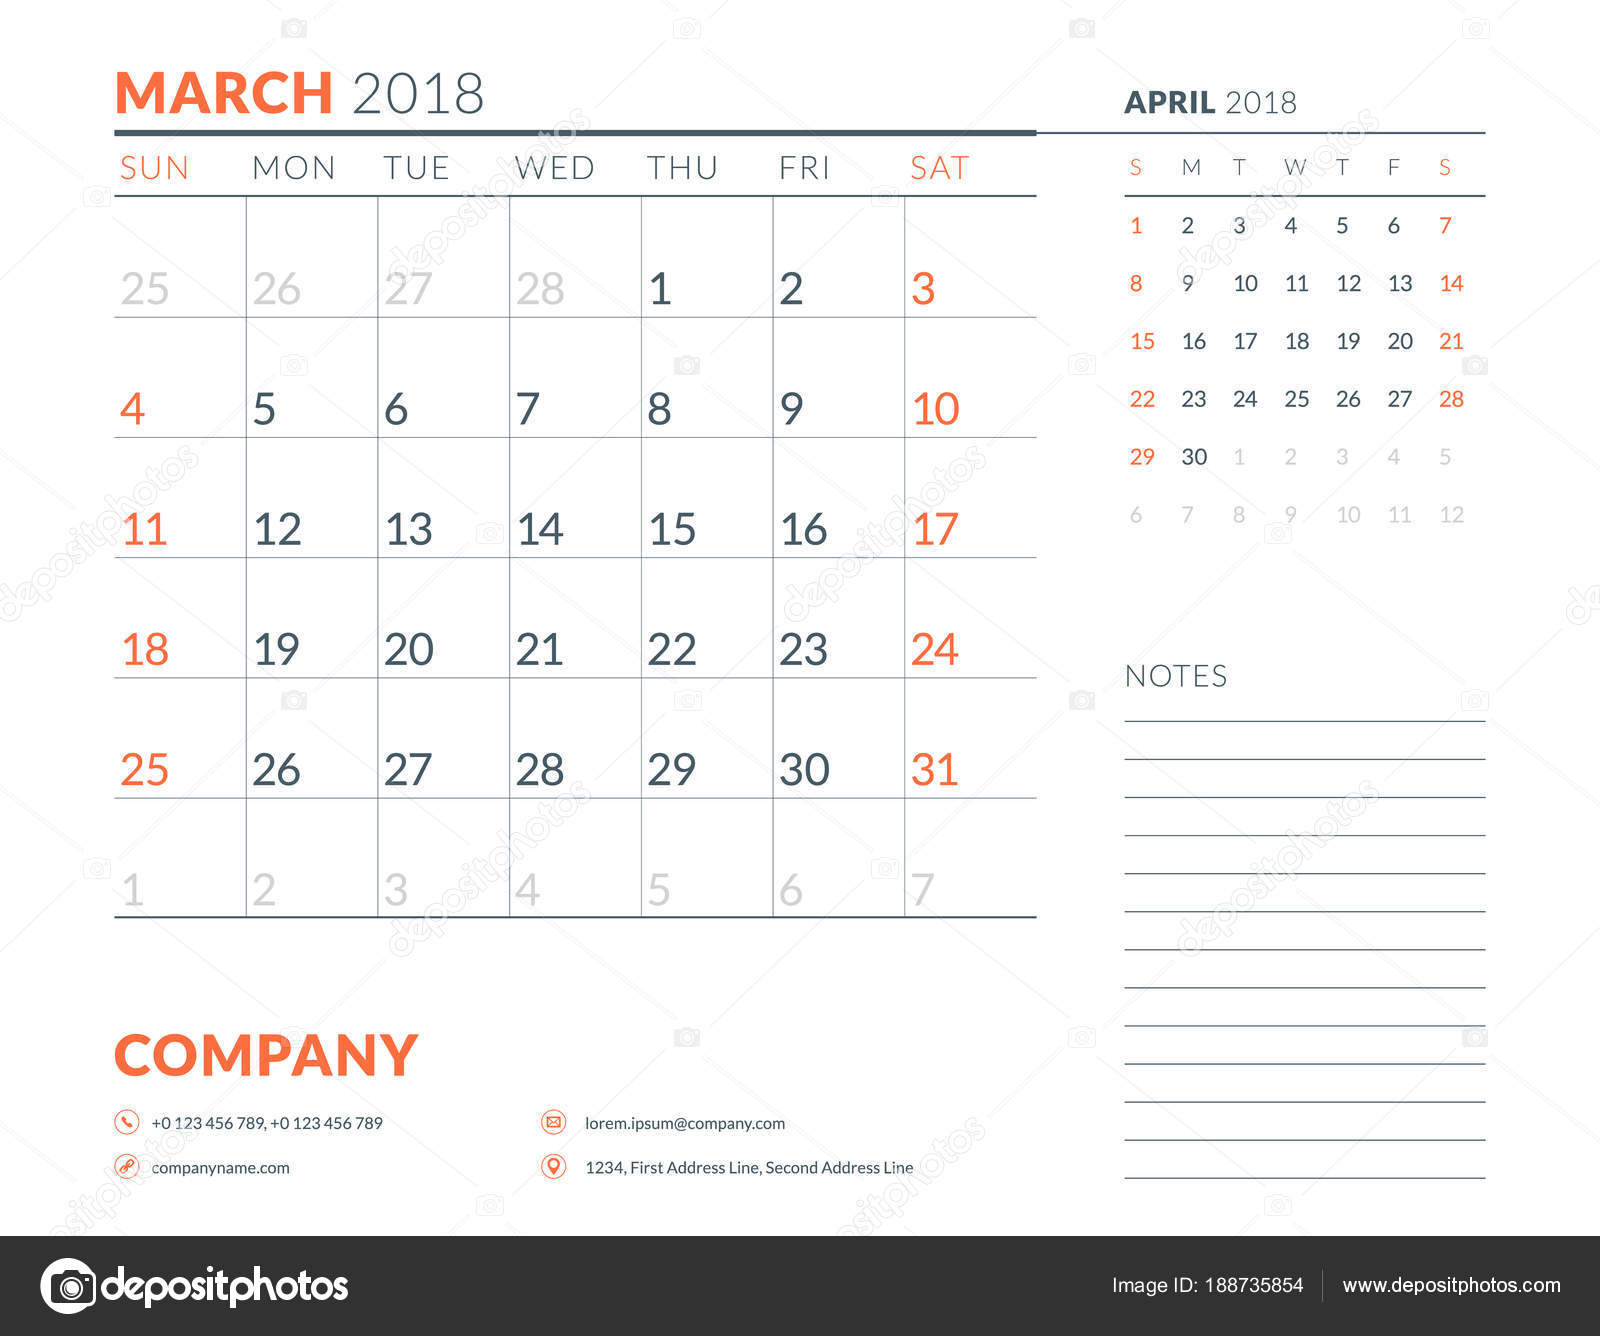 march 2018 calendar planner design template week starts on sunday stationery design